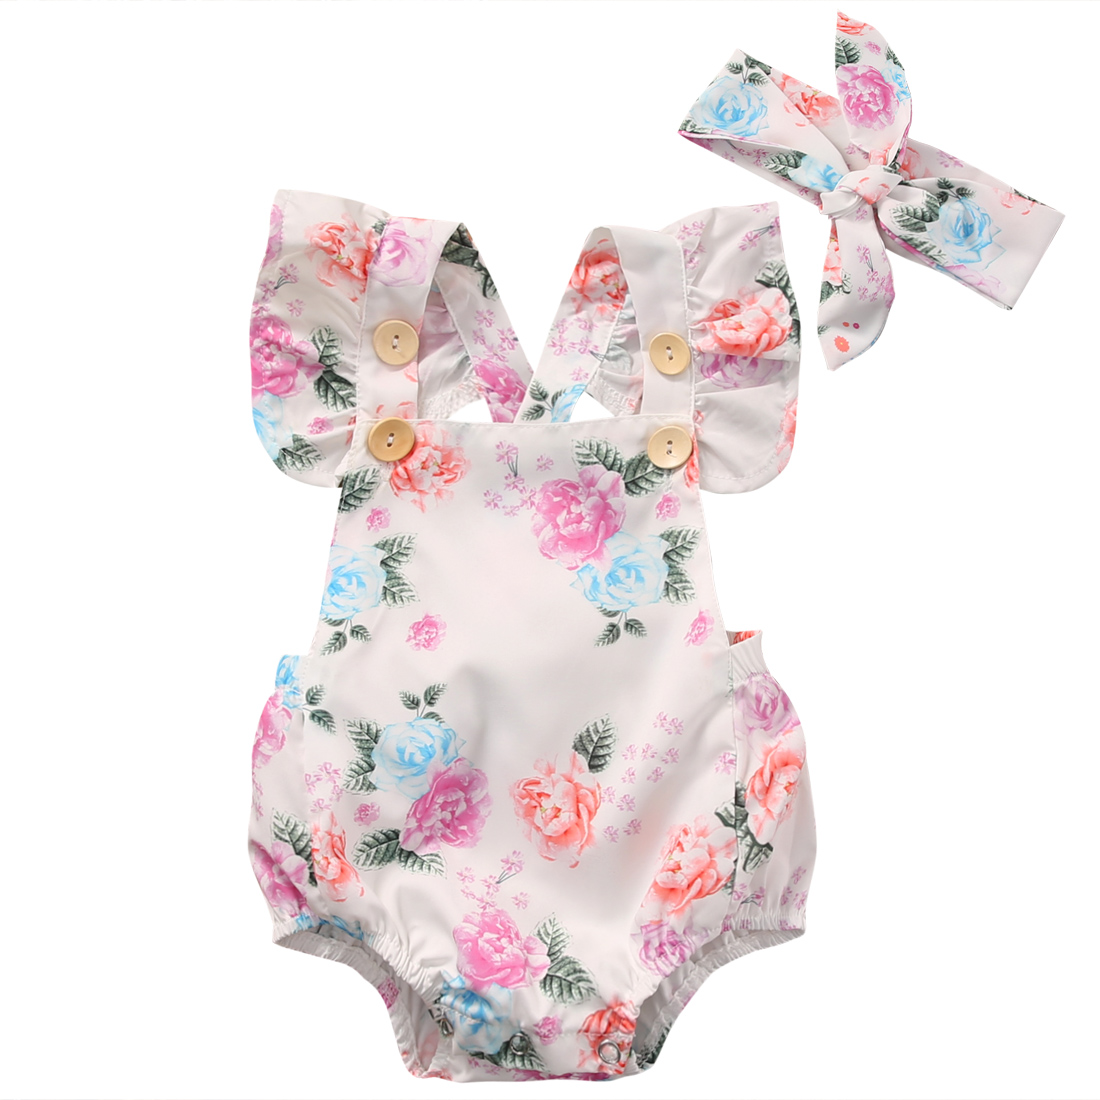 0-24M Adorable Baby Girls Floral Romper Summer Infant Toddler Baby Girl Short Ruffle Sleeve Clothes Sunsuit Set